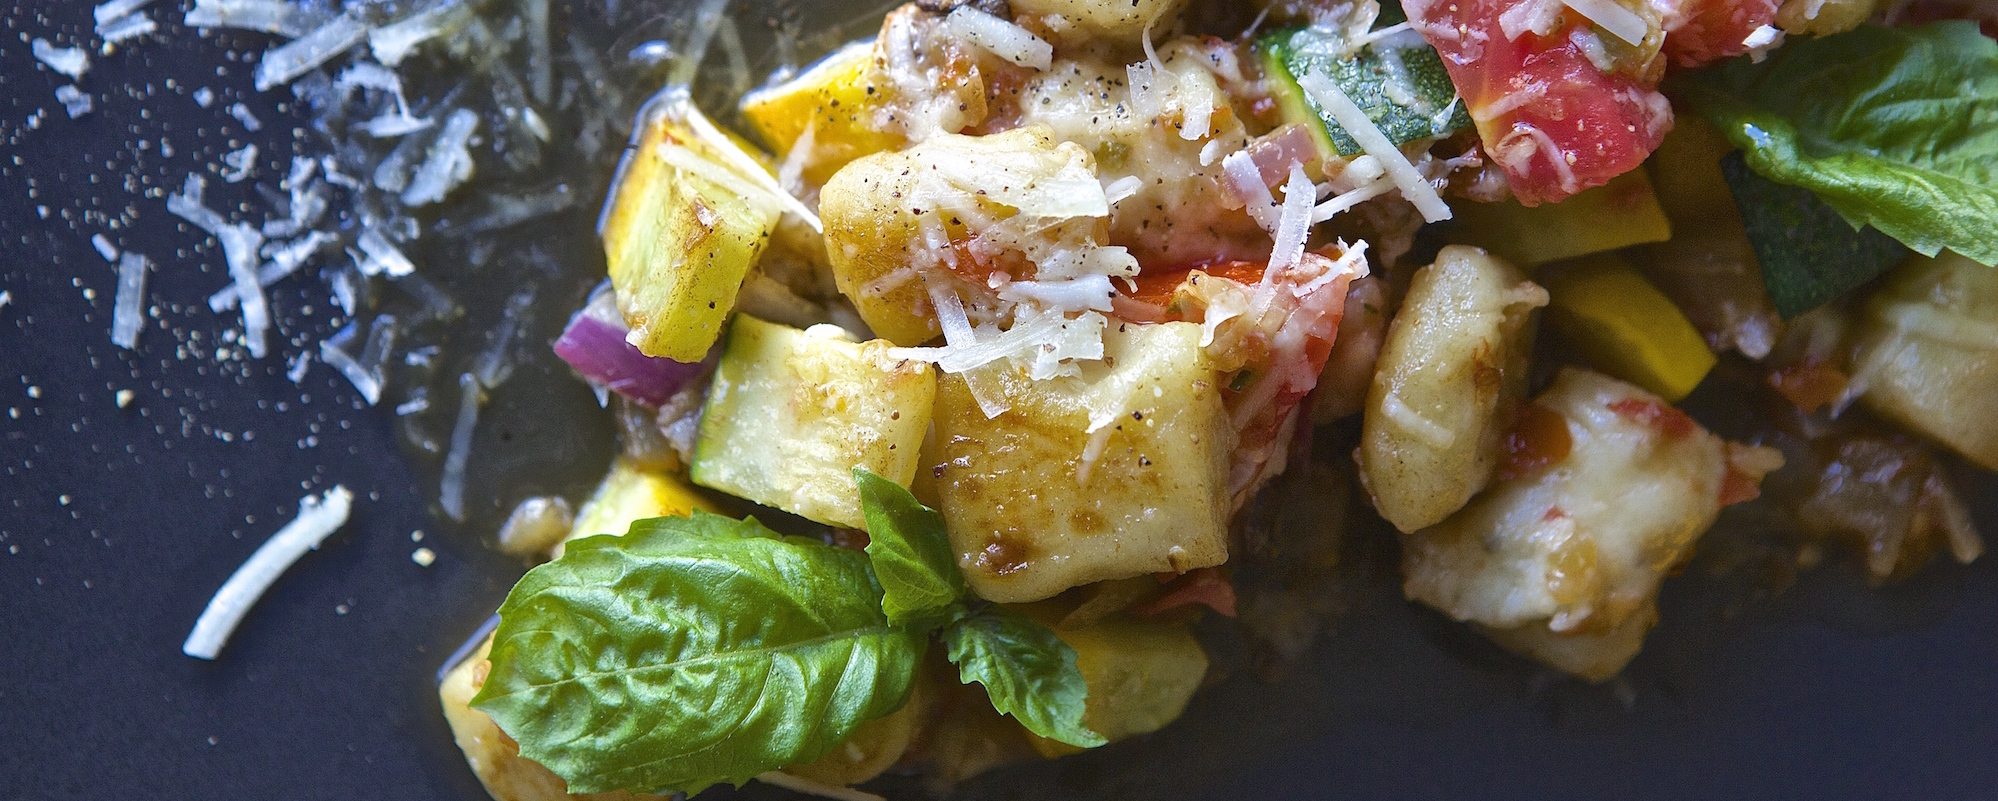 Gnocchi with Four J Vegetable Bolognese